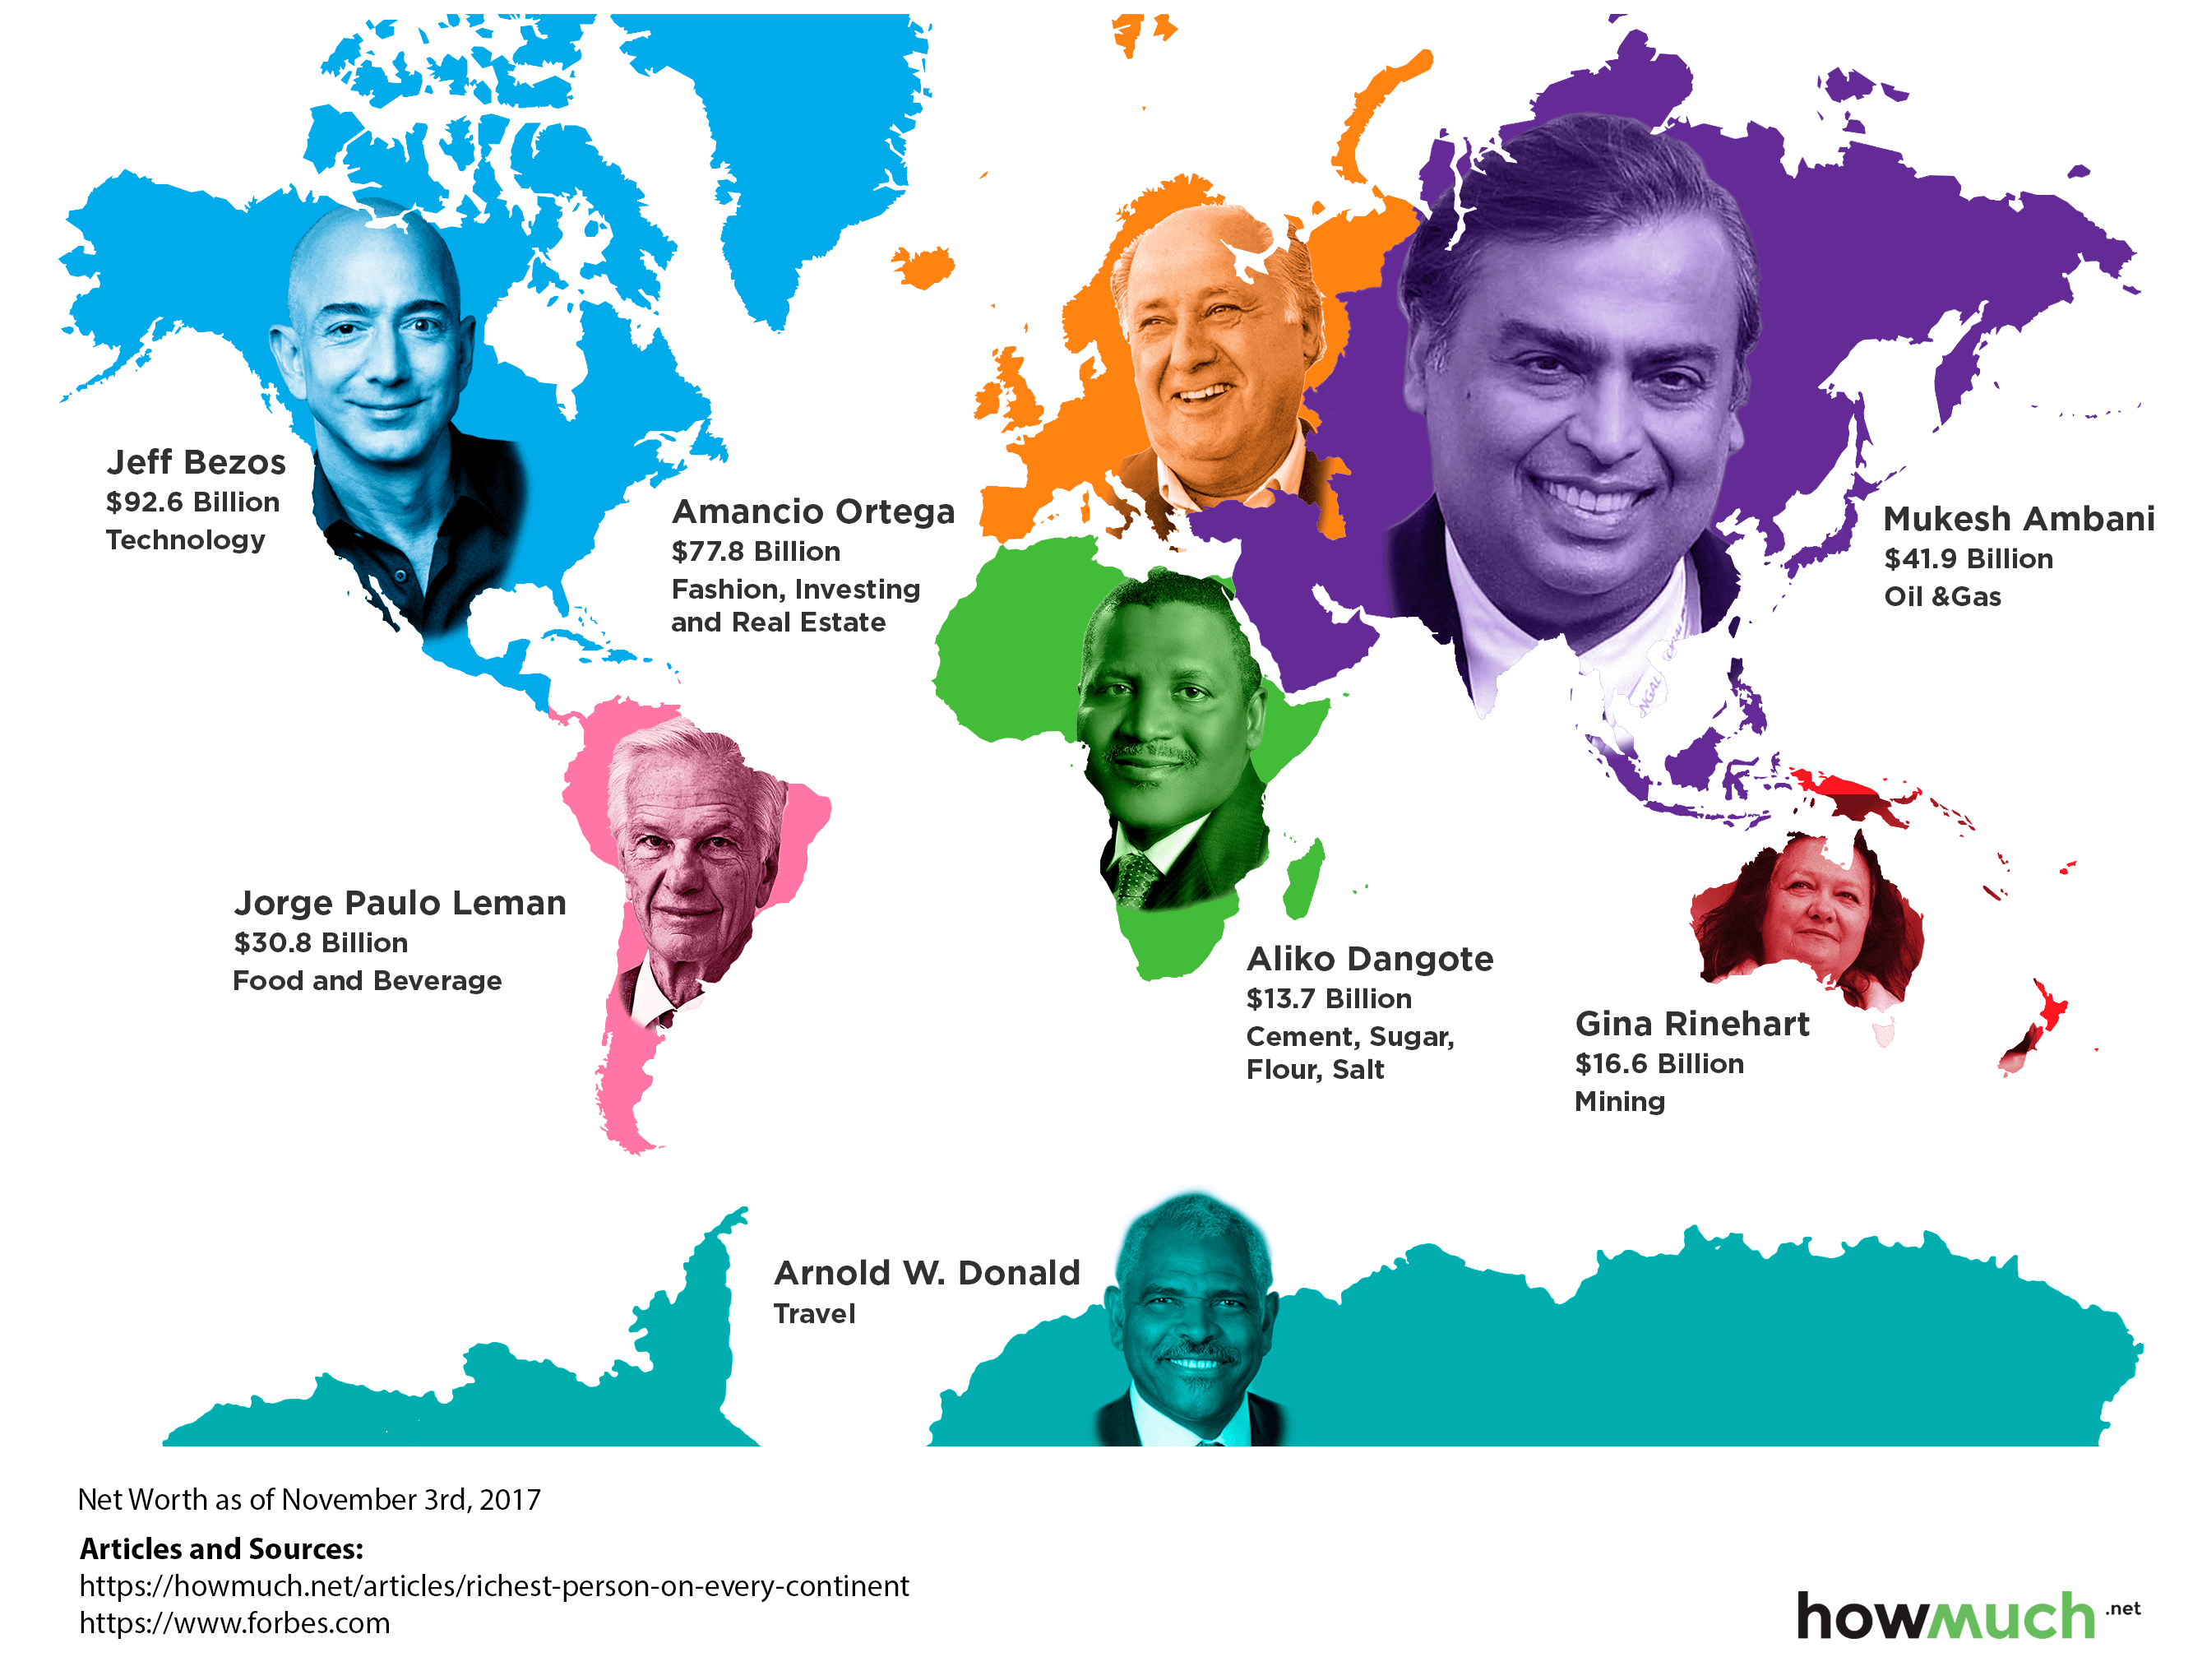 Infographic: The Richest Person on Each Continent.